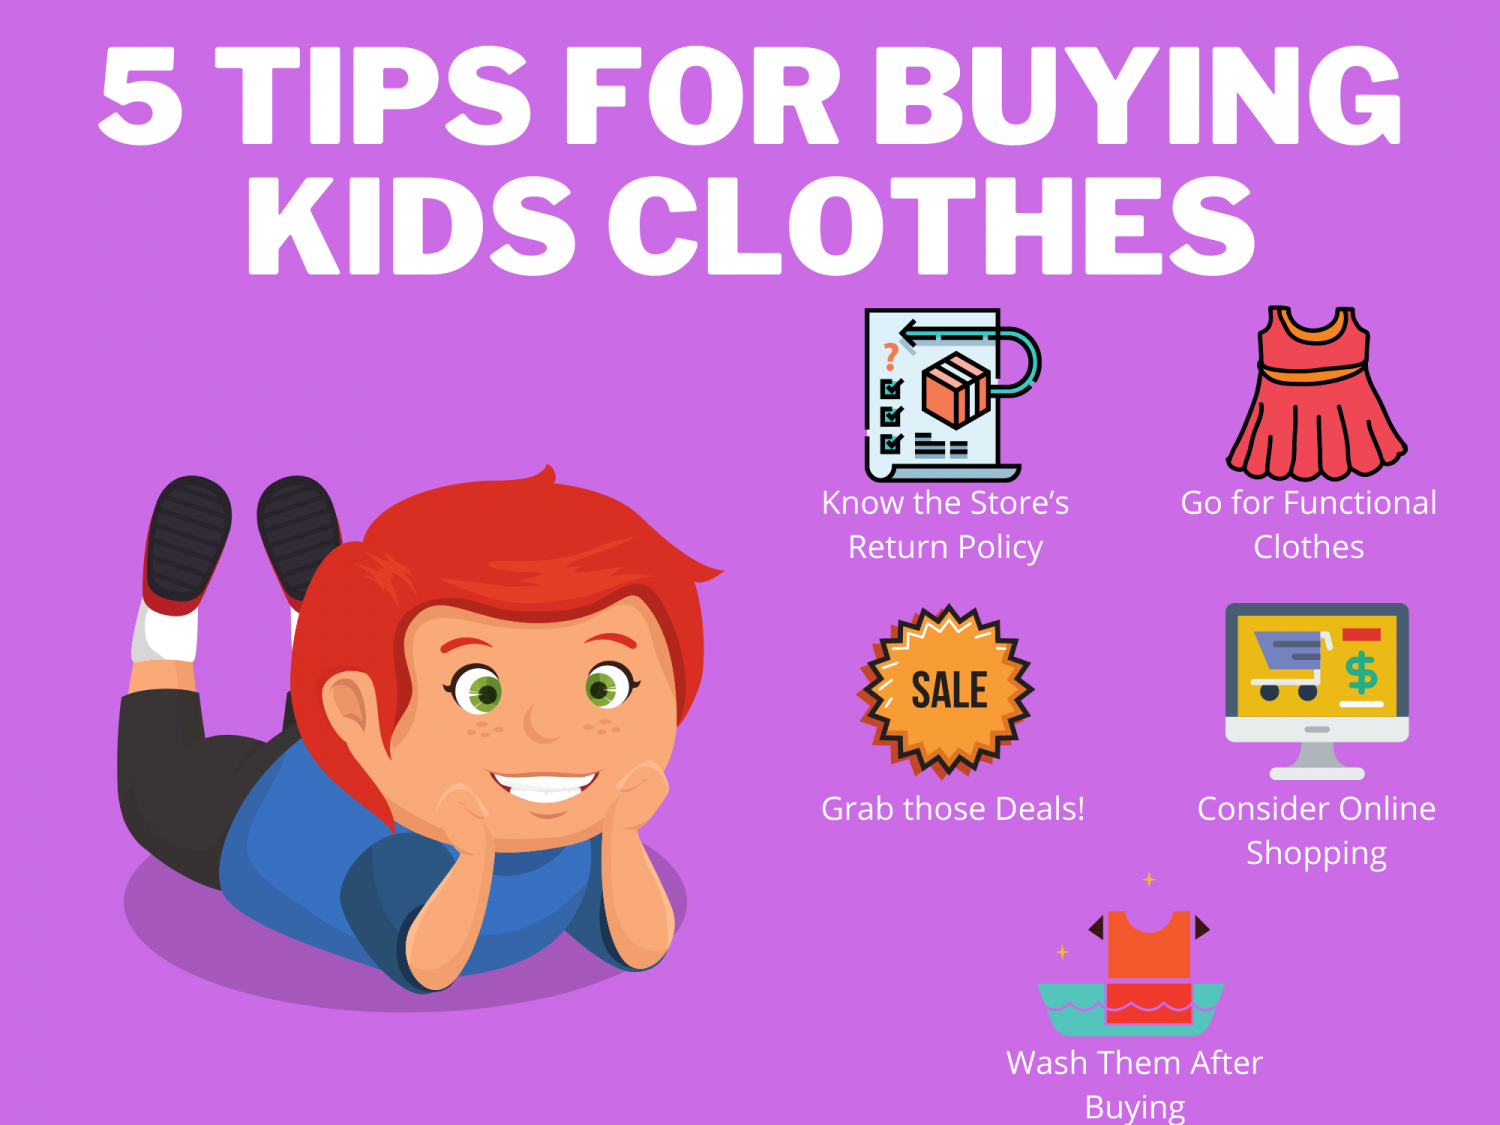 5 Tips for Buying Kids Clothes Infographic